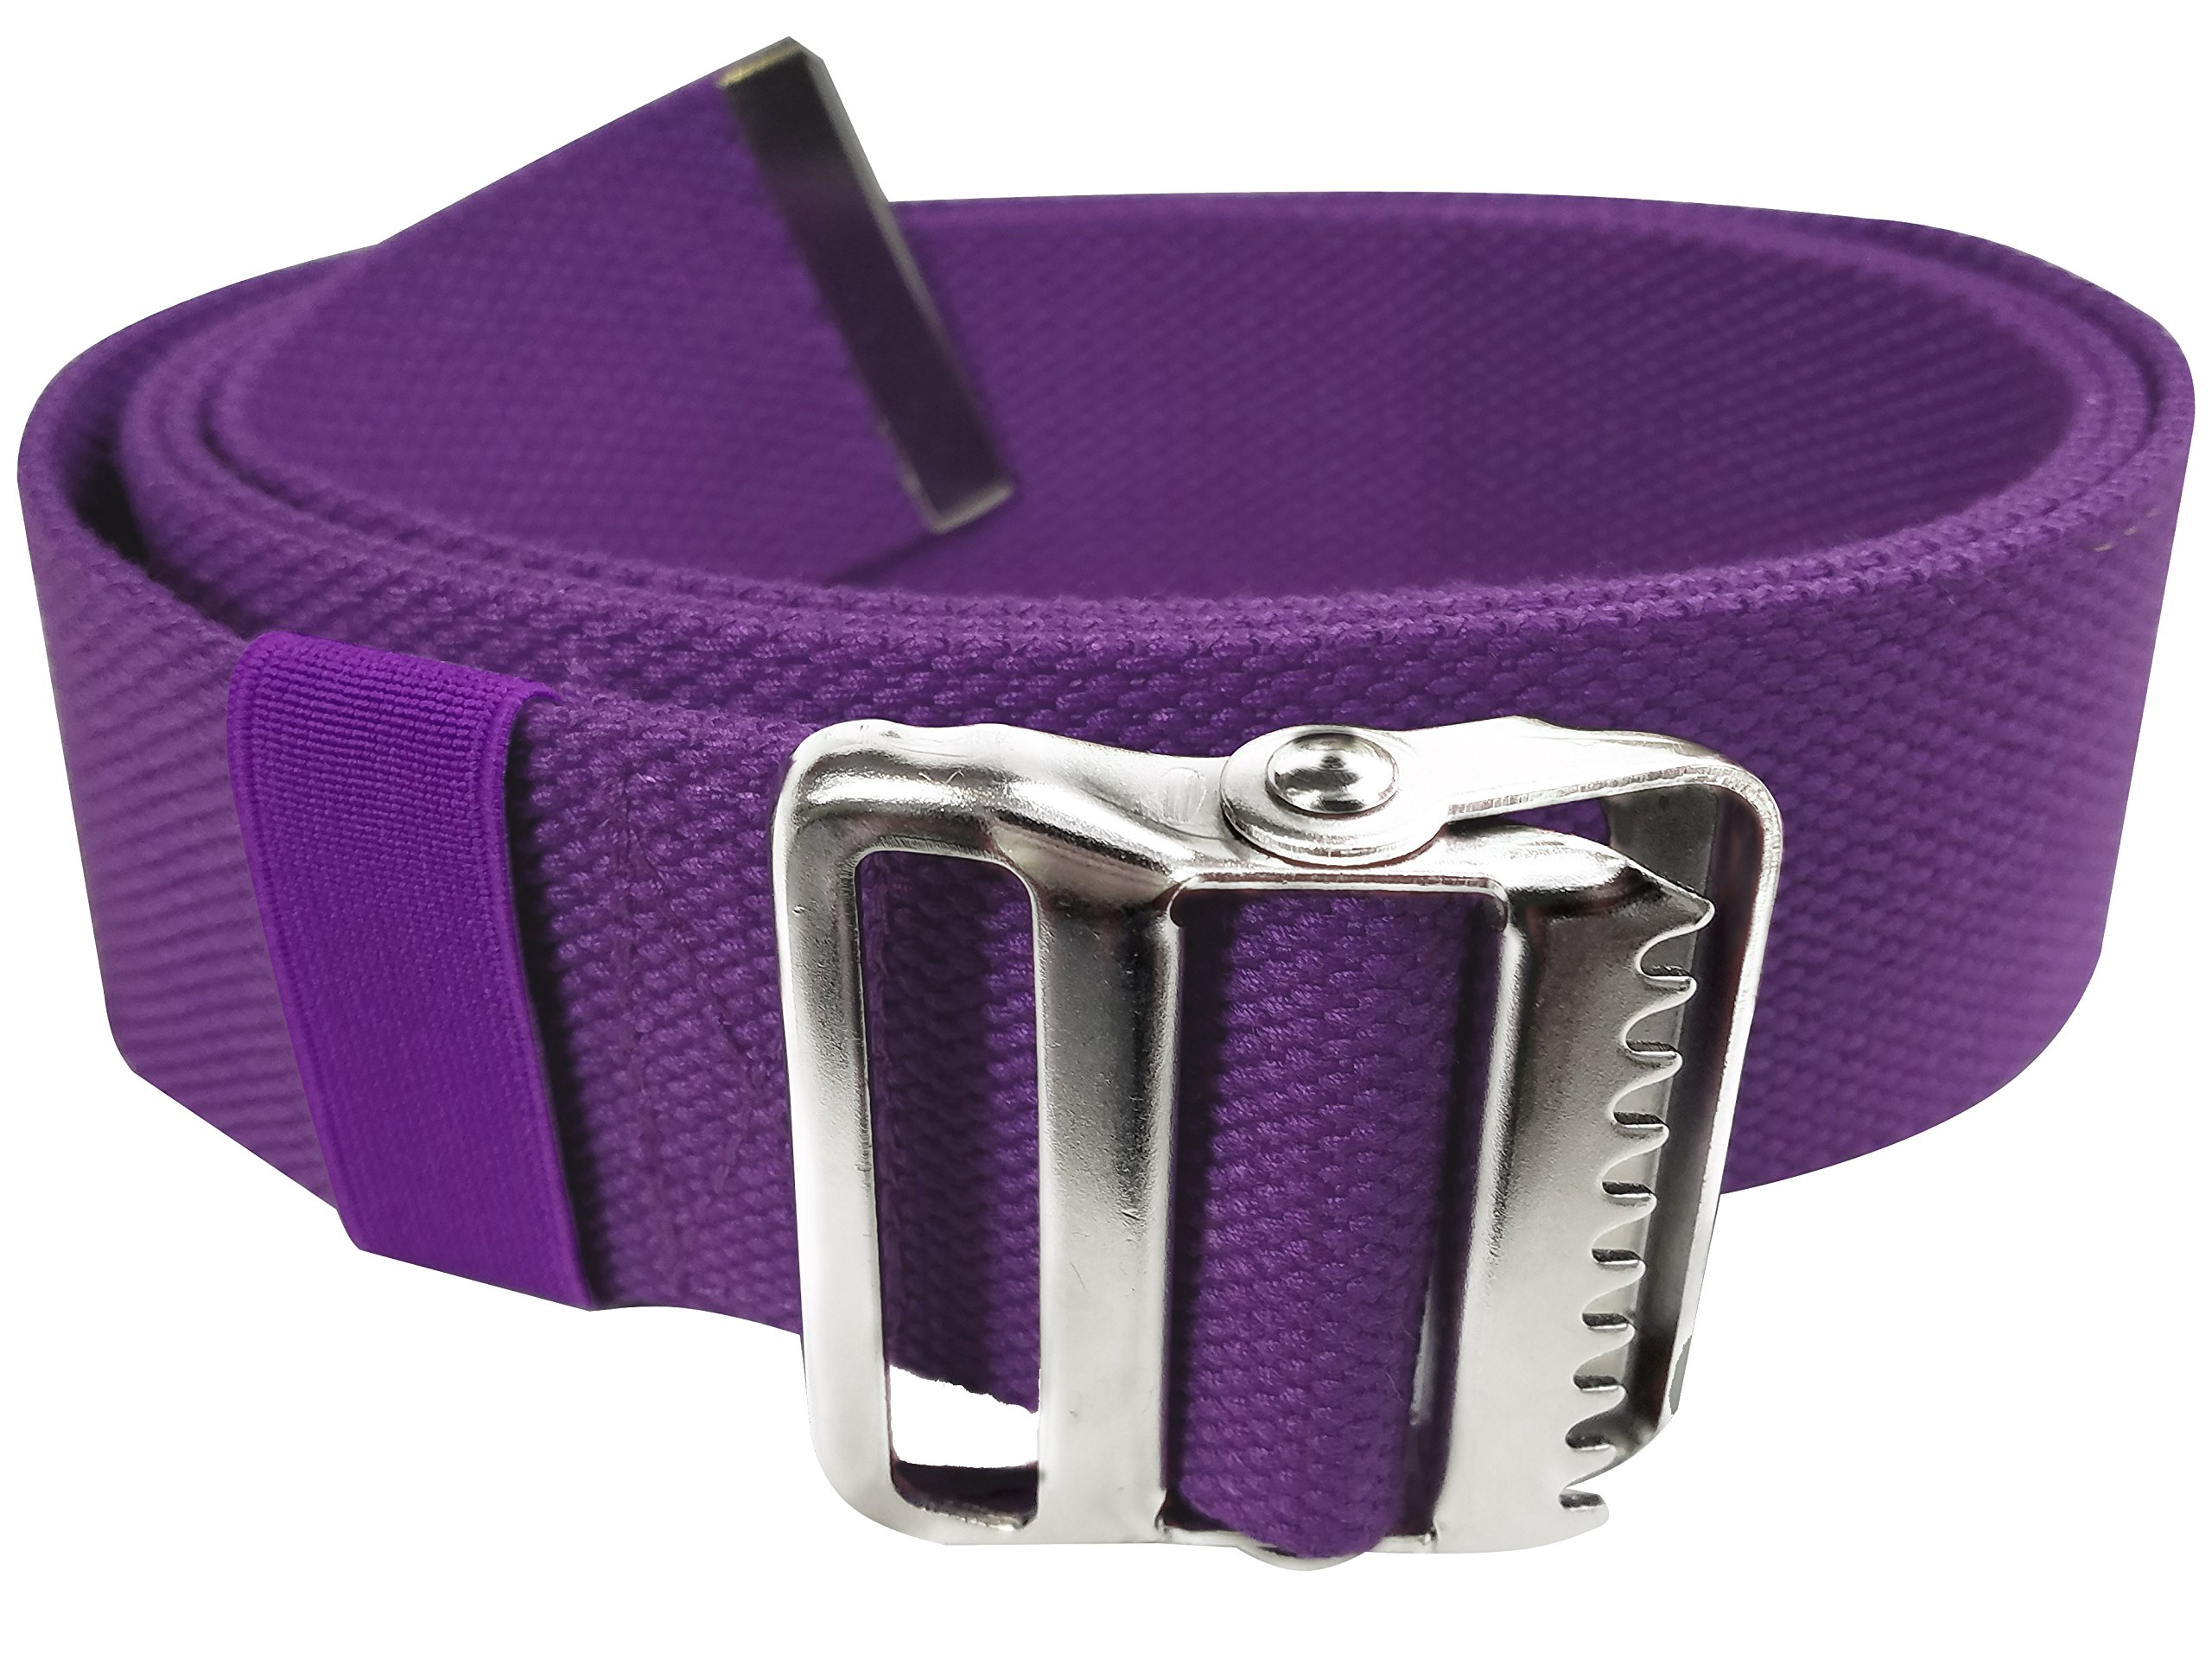 LiftAid Walking Gait Belt and Patient Transfer with Metal Buckle and Belt Loop Holder for Nurse, Caregiver, Physical Therapist (Purple, 60'')